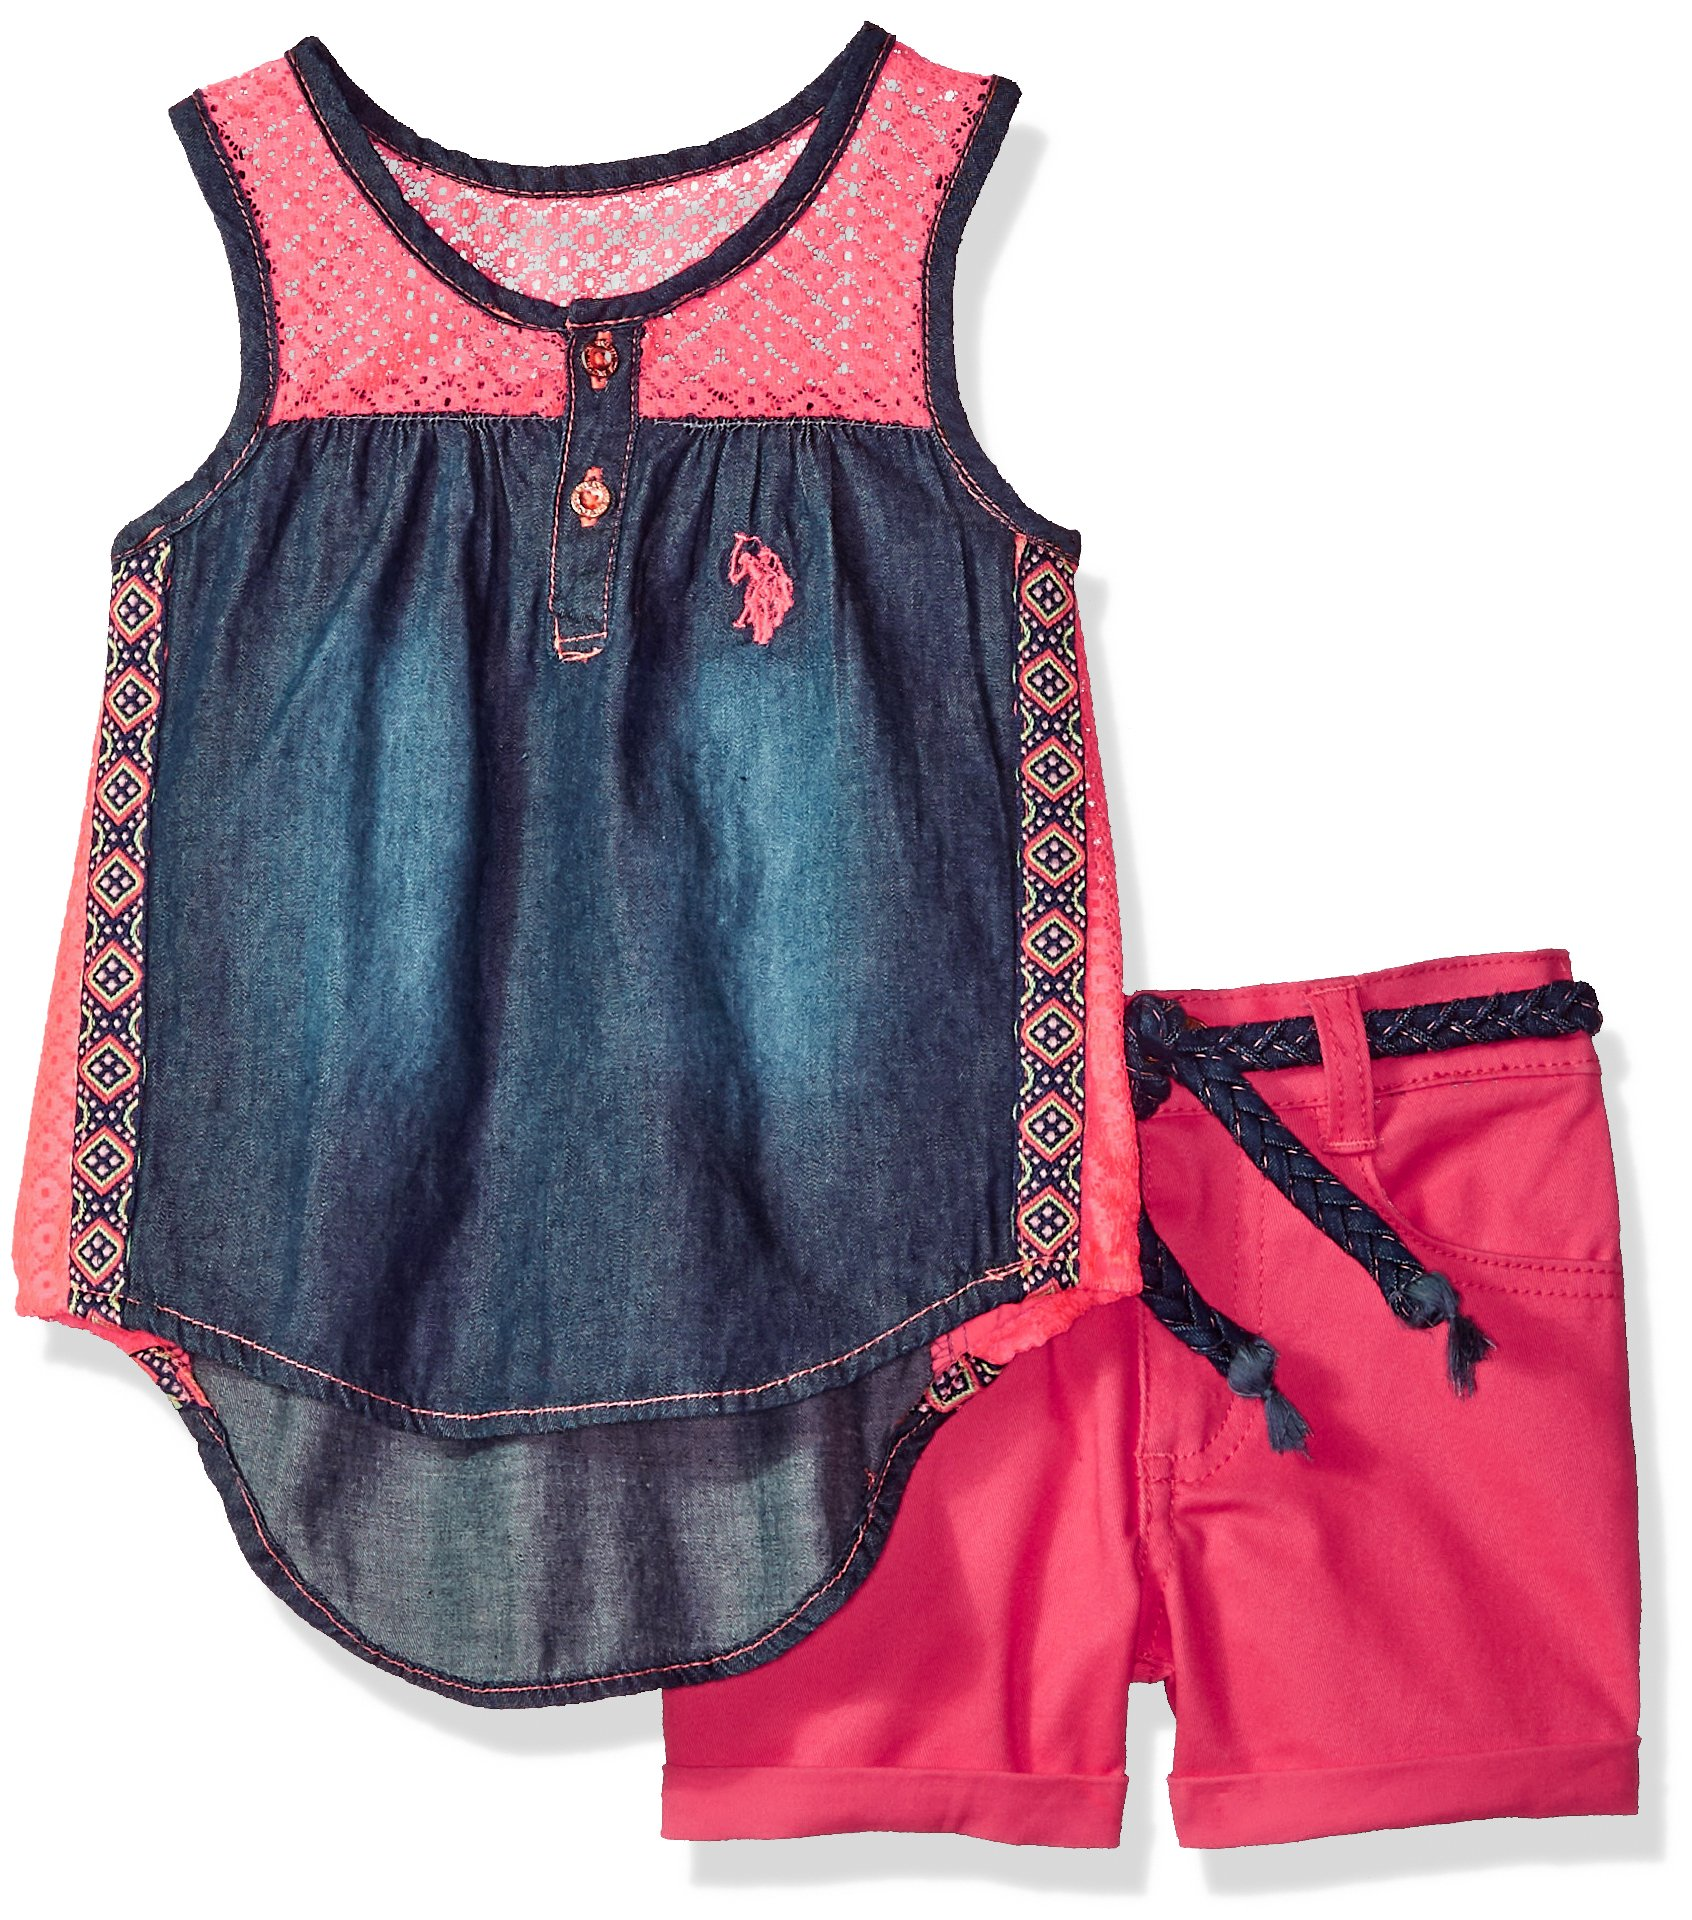 U.S. Polo Assn. Big Girls' Fashion Top and Short Set, Lace Yoke Tank Stretch Twill Short Multi, 10